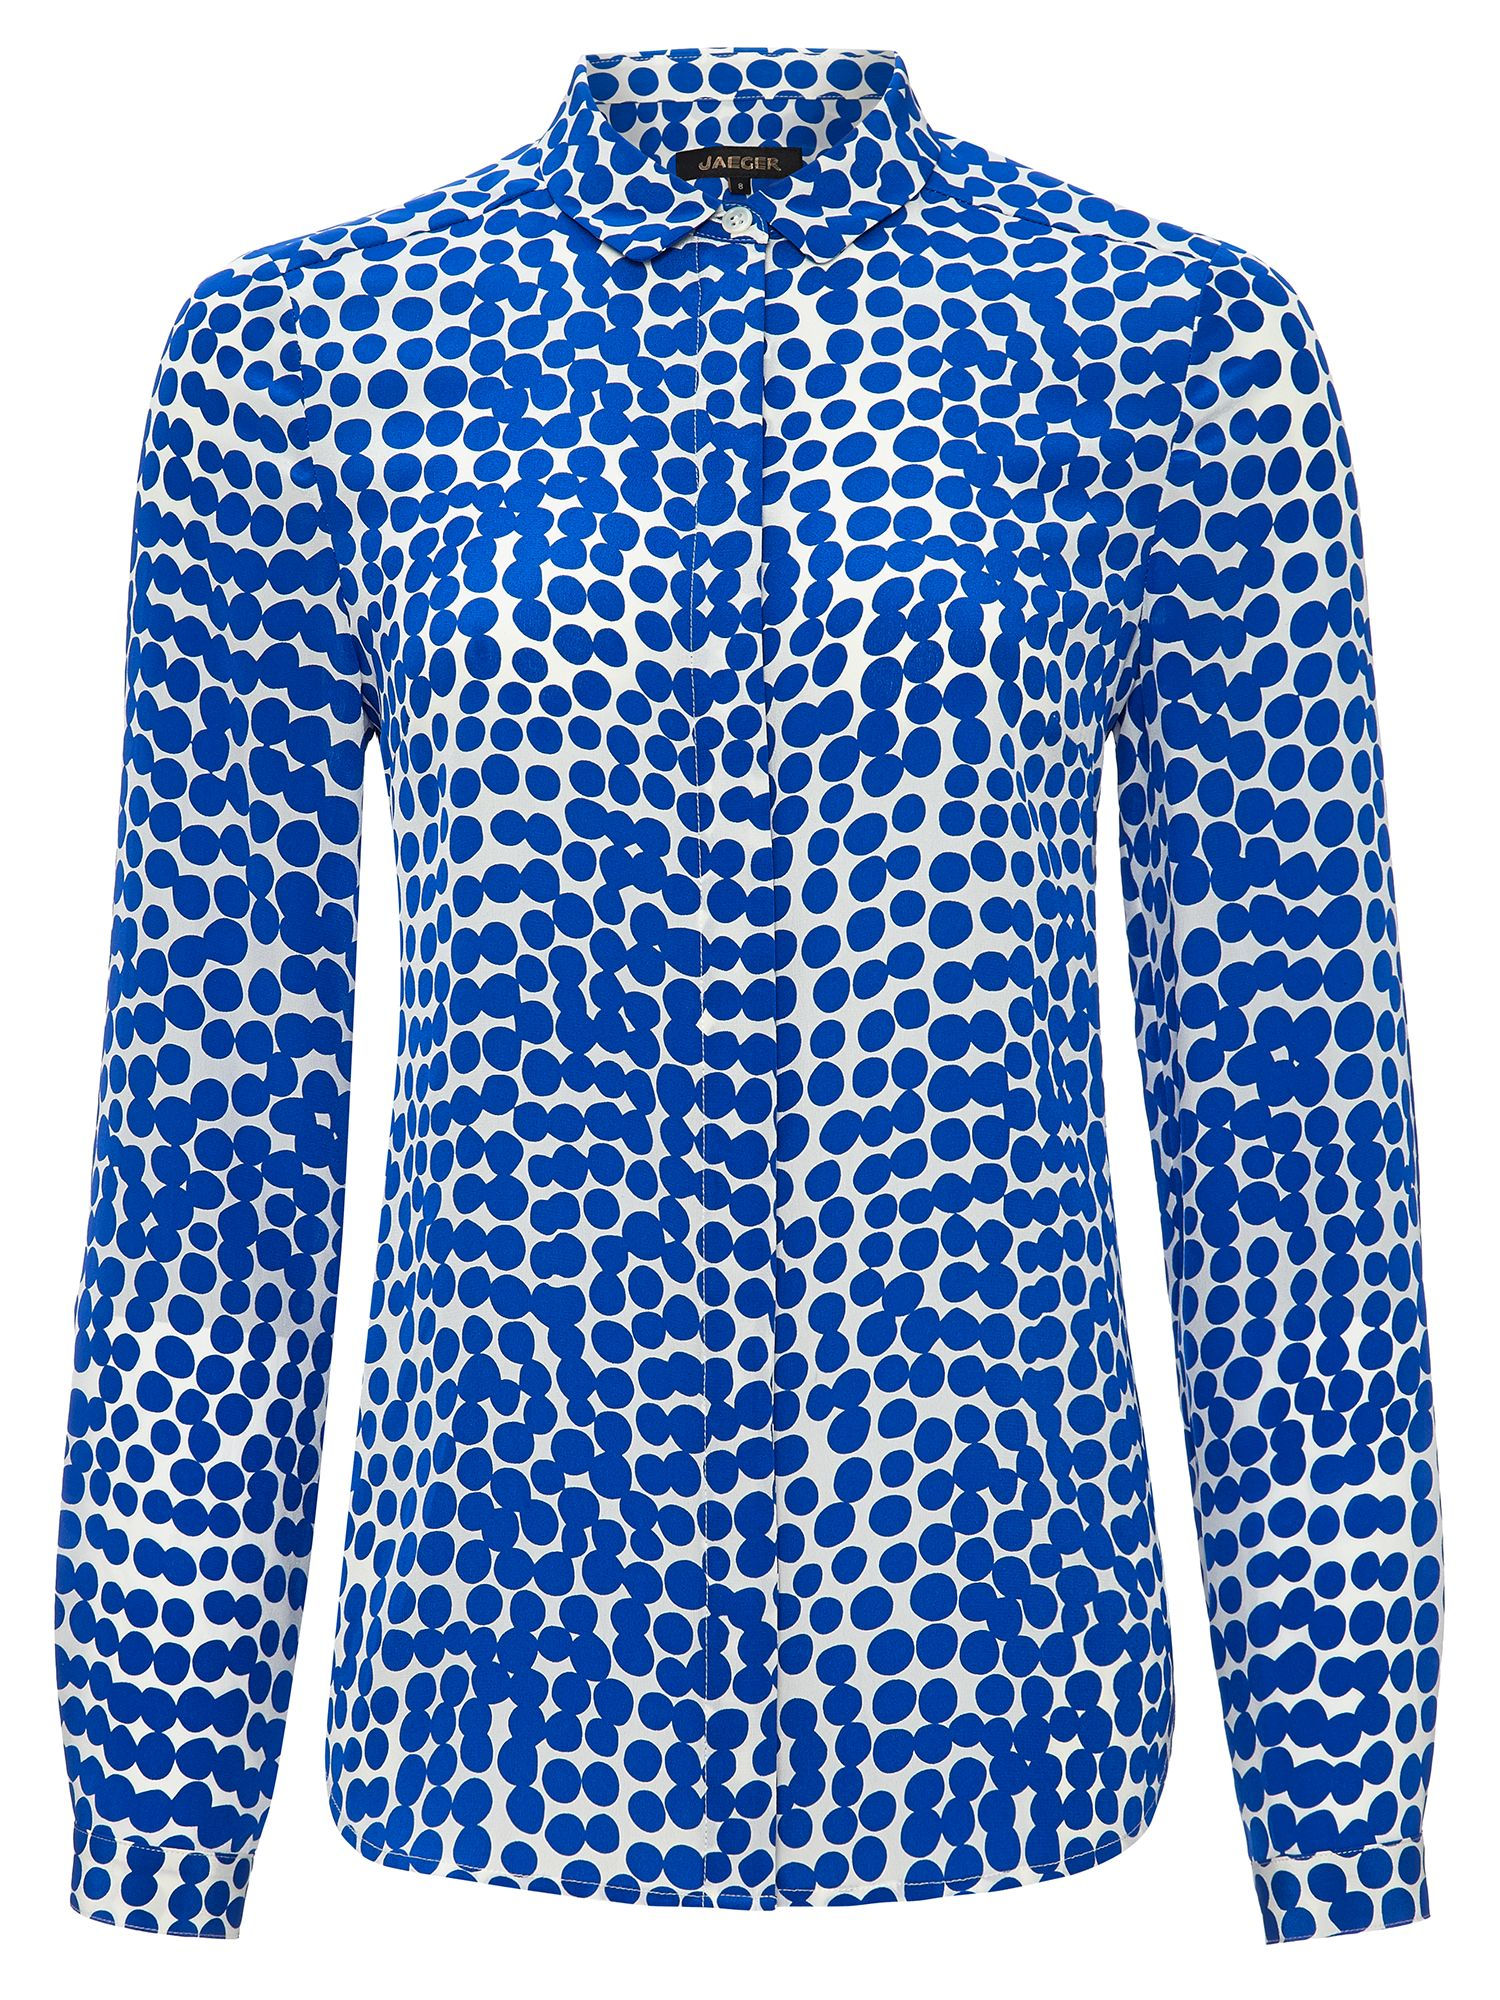 Jaeger: Abstract Spot Silk Blouse